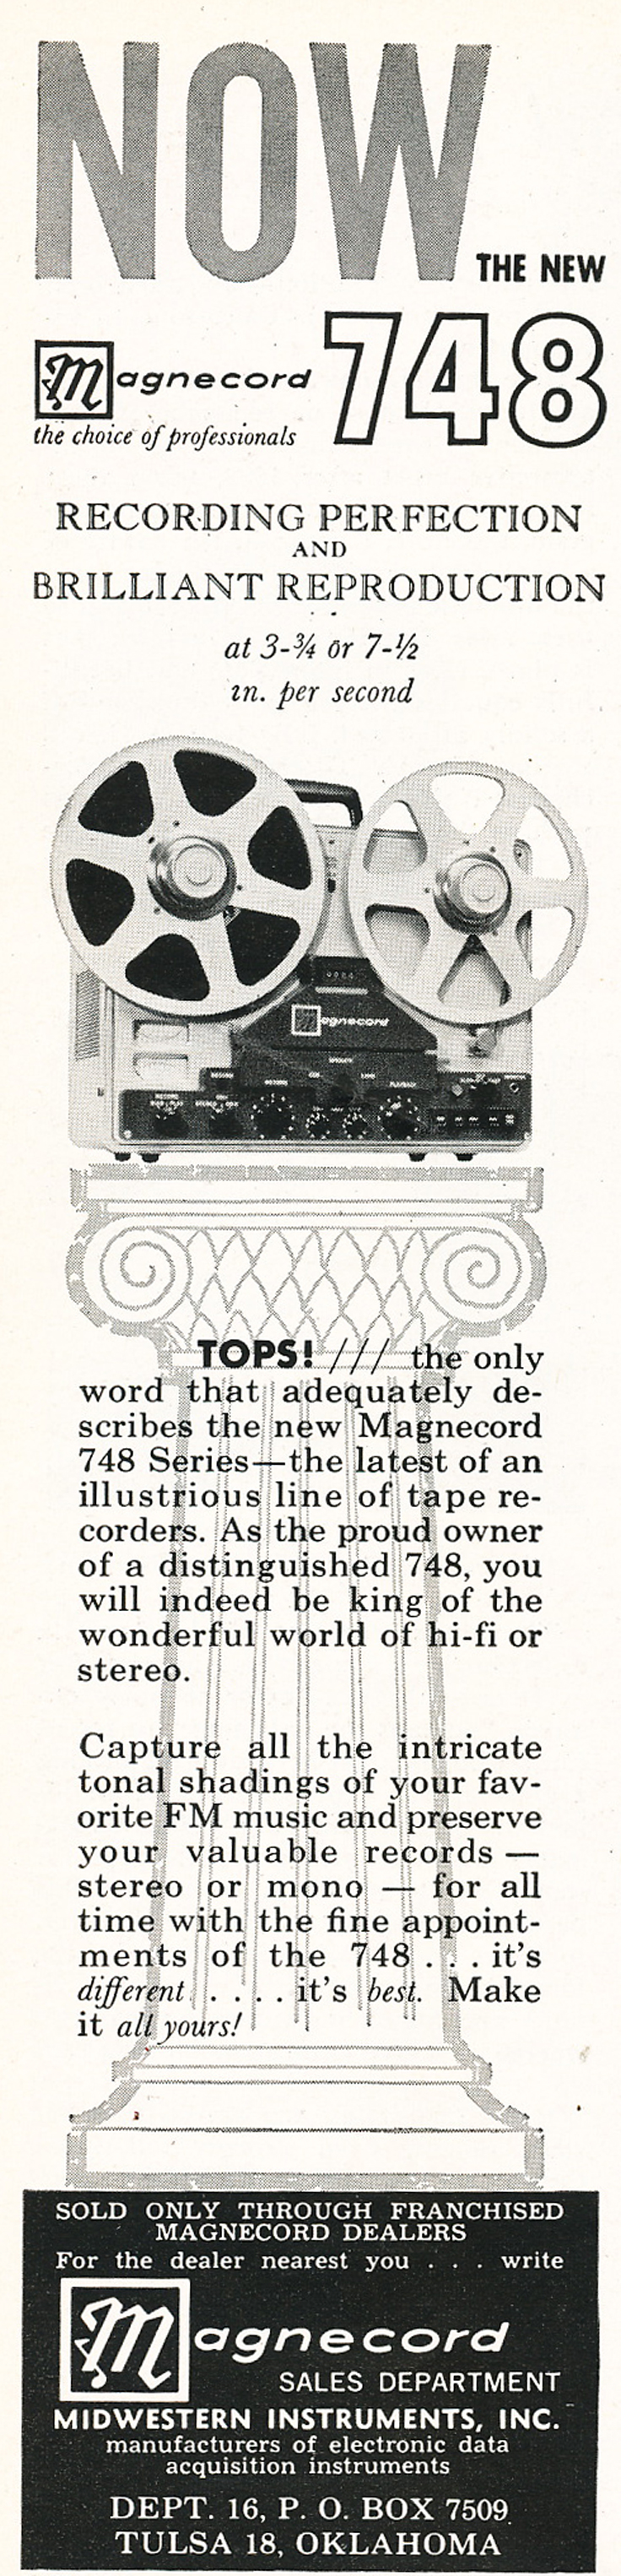 1961 ad for the Magnecord 748 professional reel to reel tape recorder in Reel2ReelTexas.com's vintage recording collection